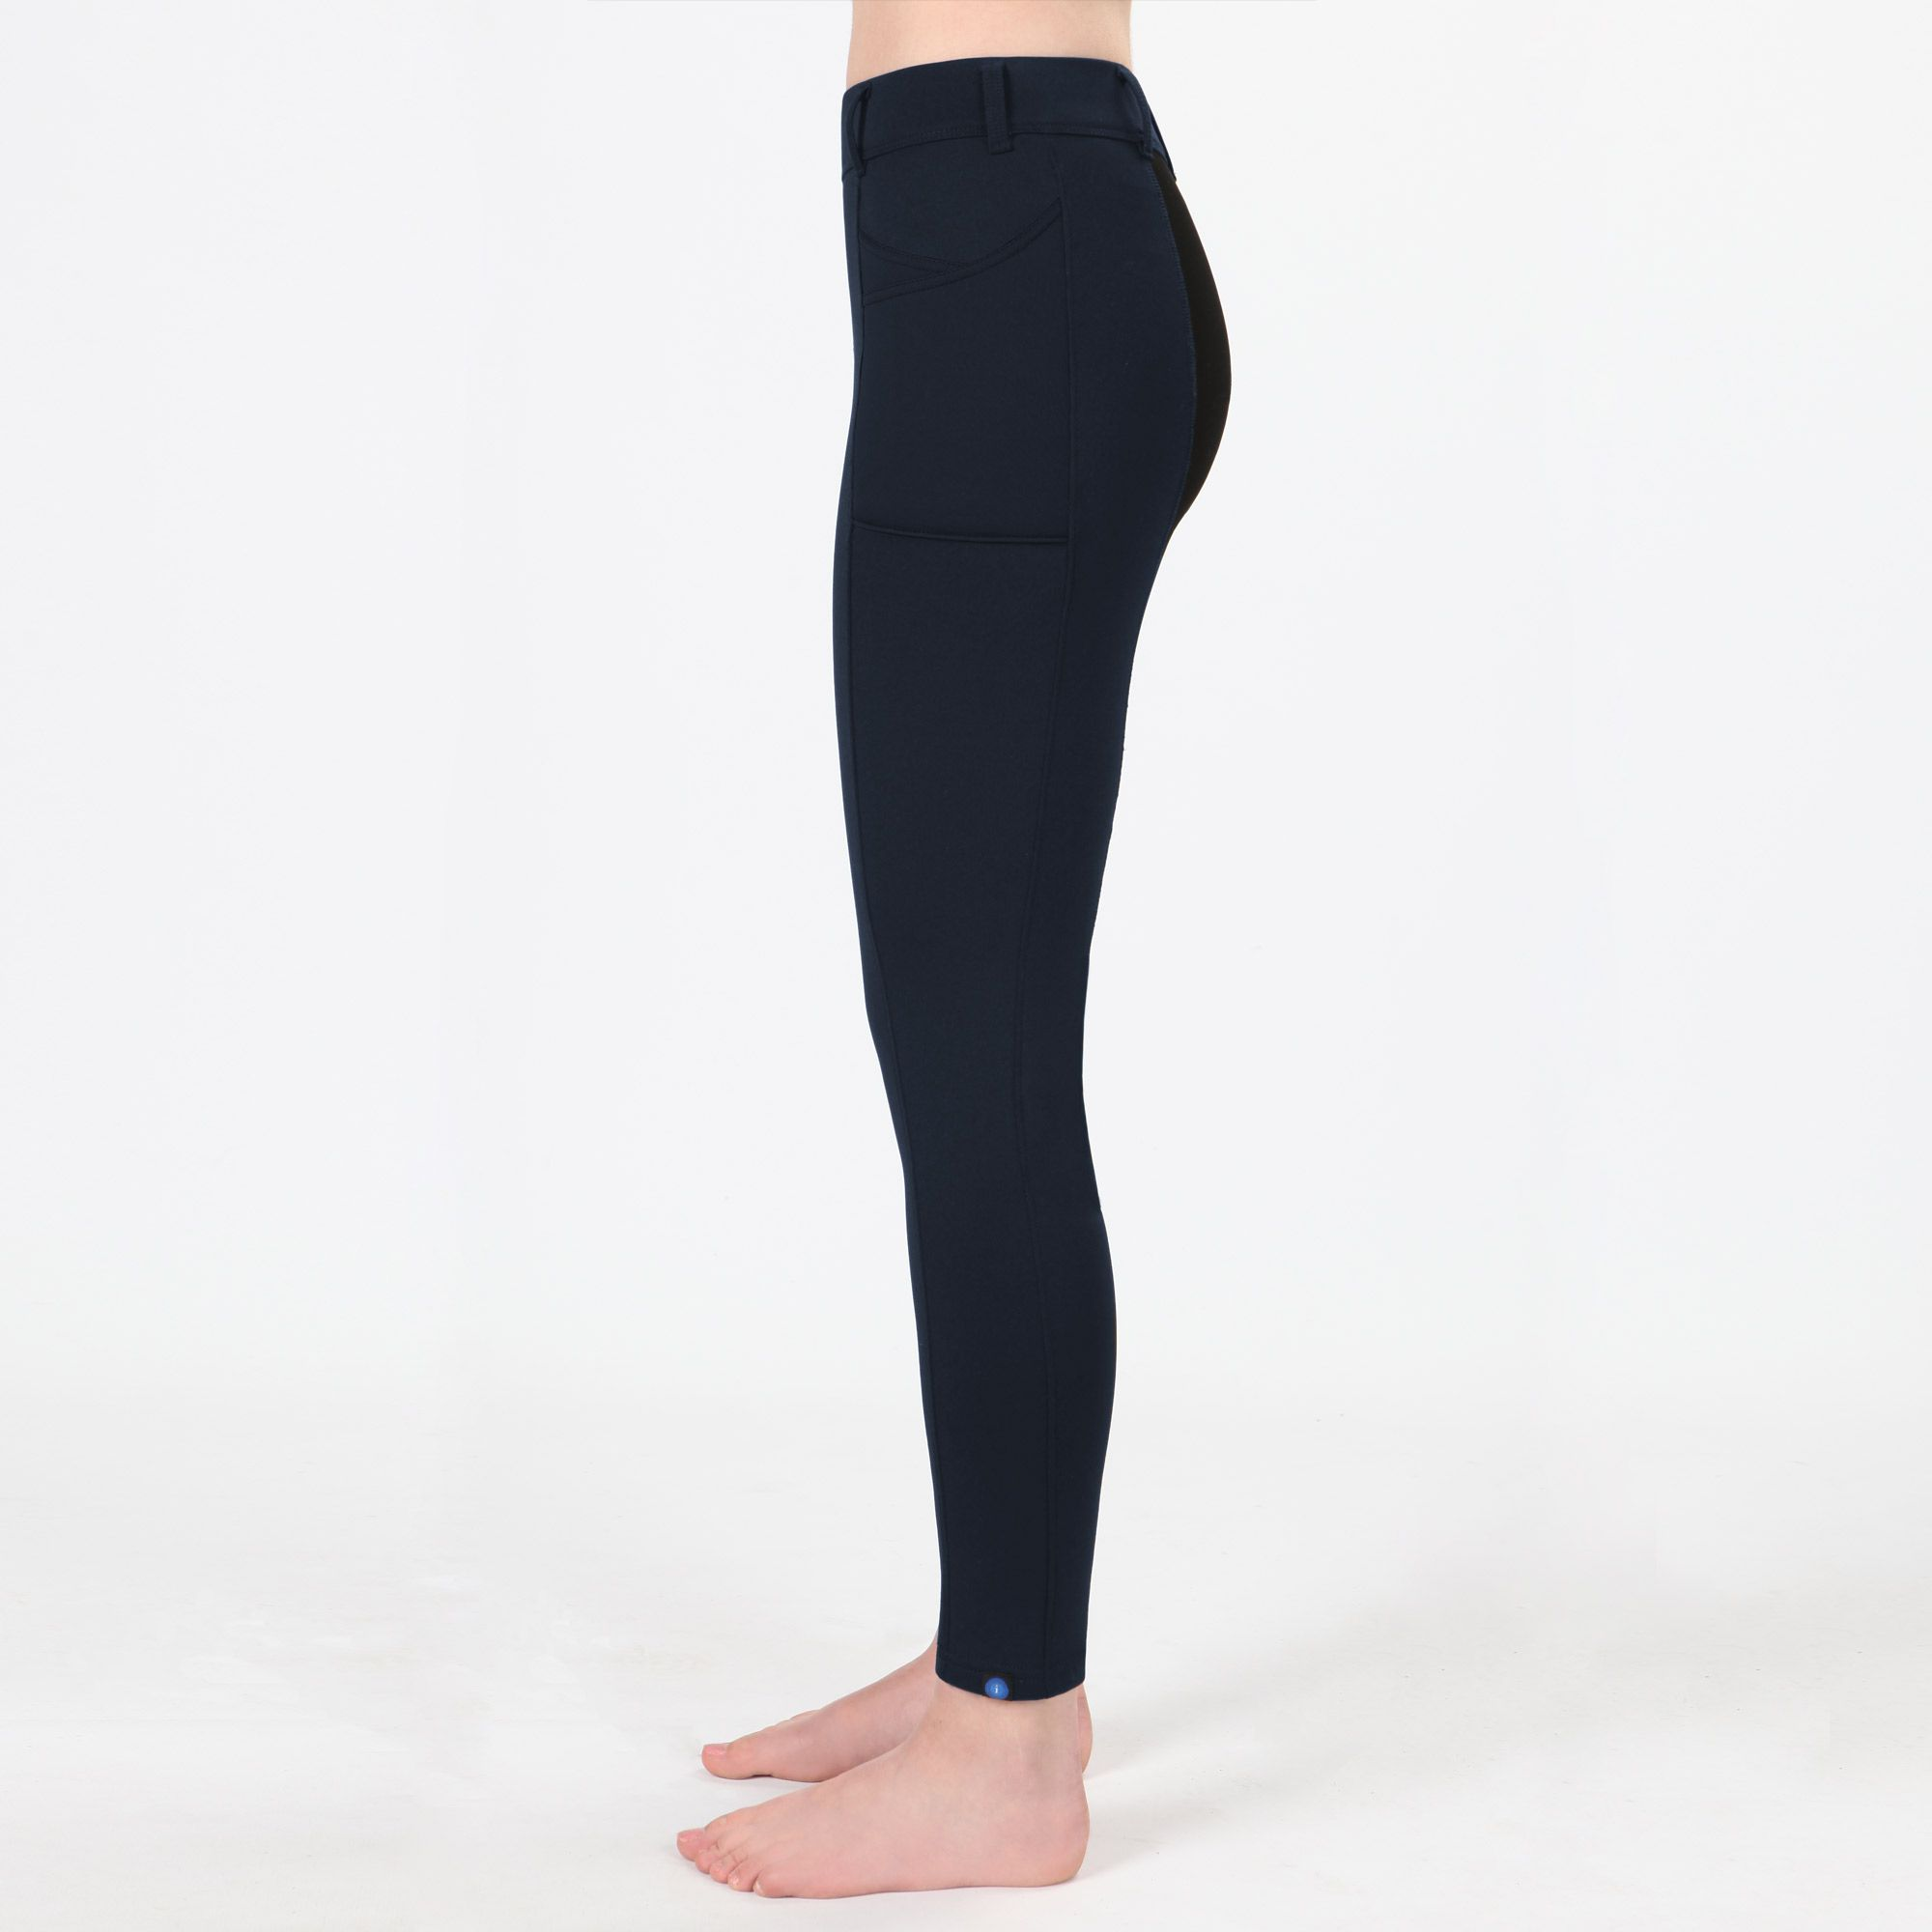 Irideon Thermasoft Wouomo Full Seat Riding Breeches with with with Criss-Cross Fleece e362d3